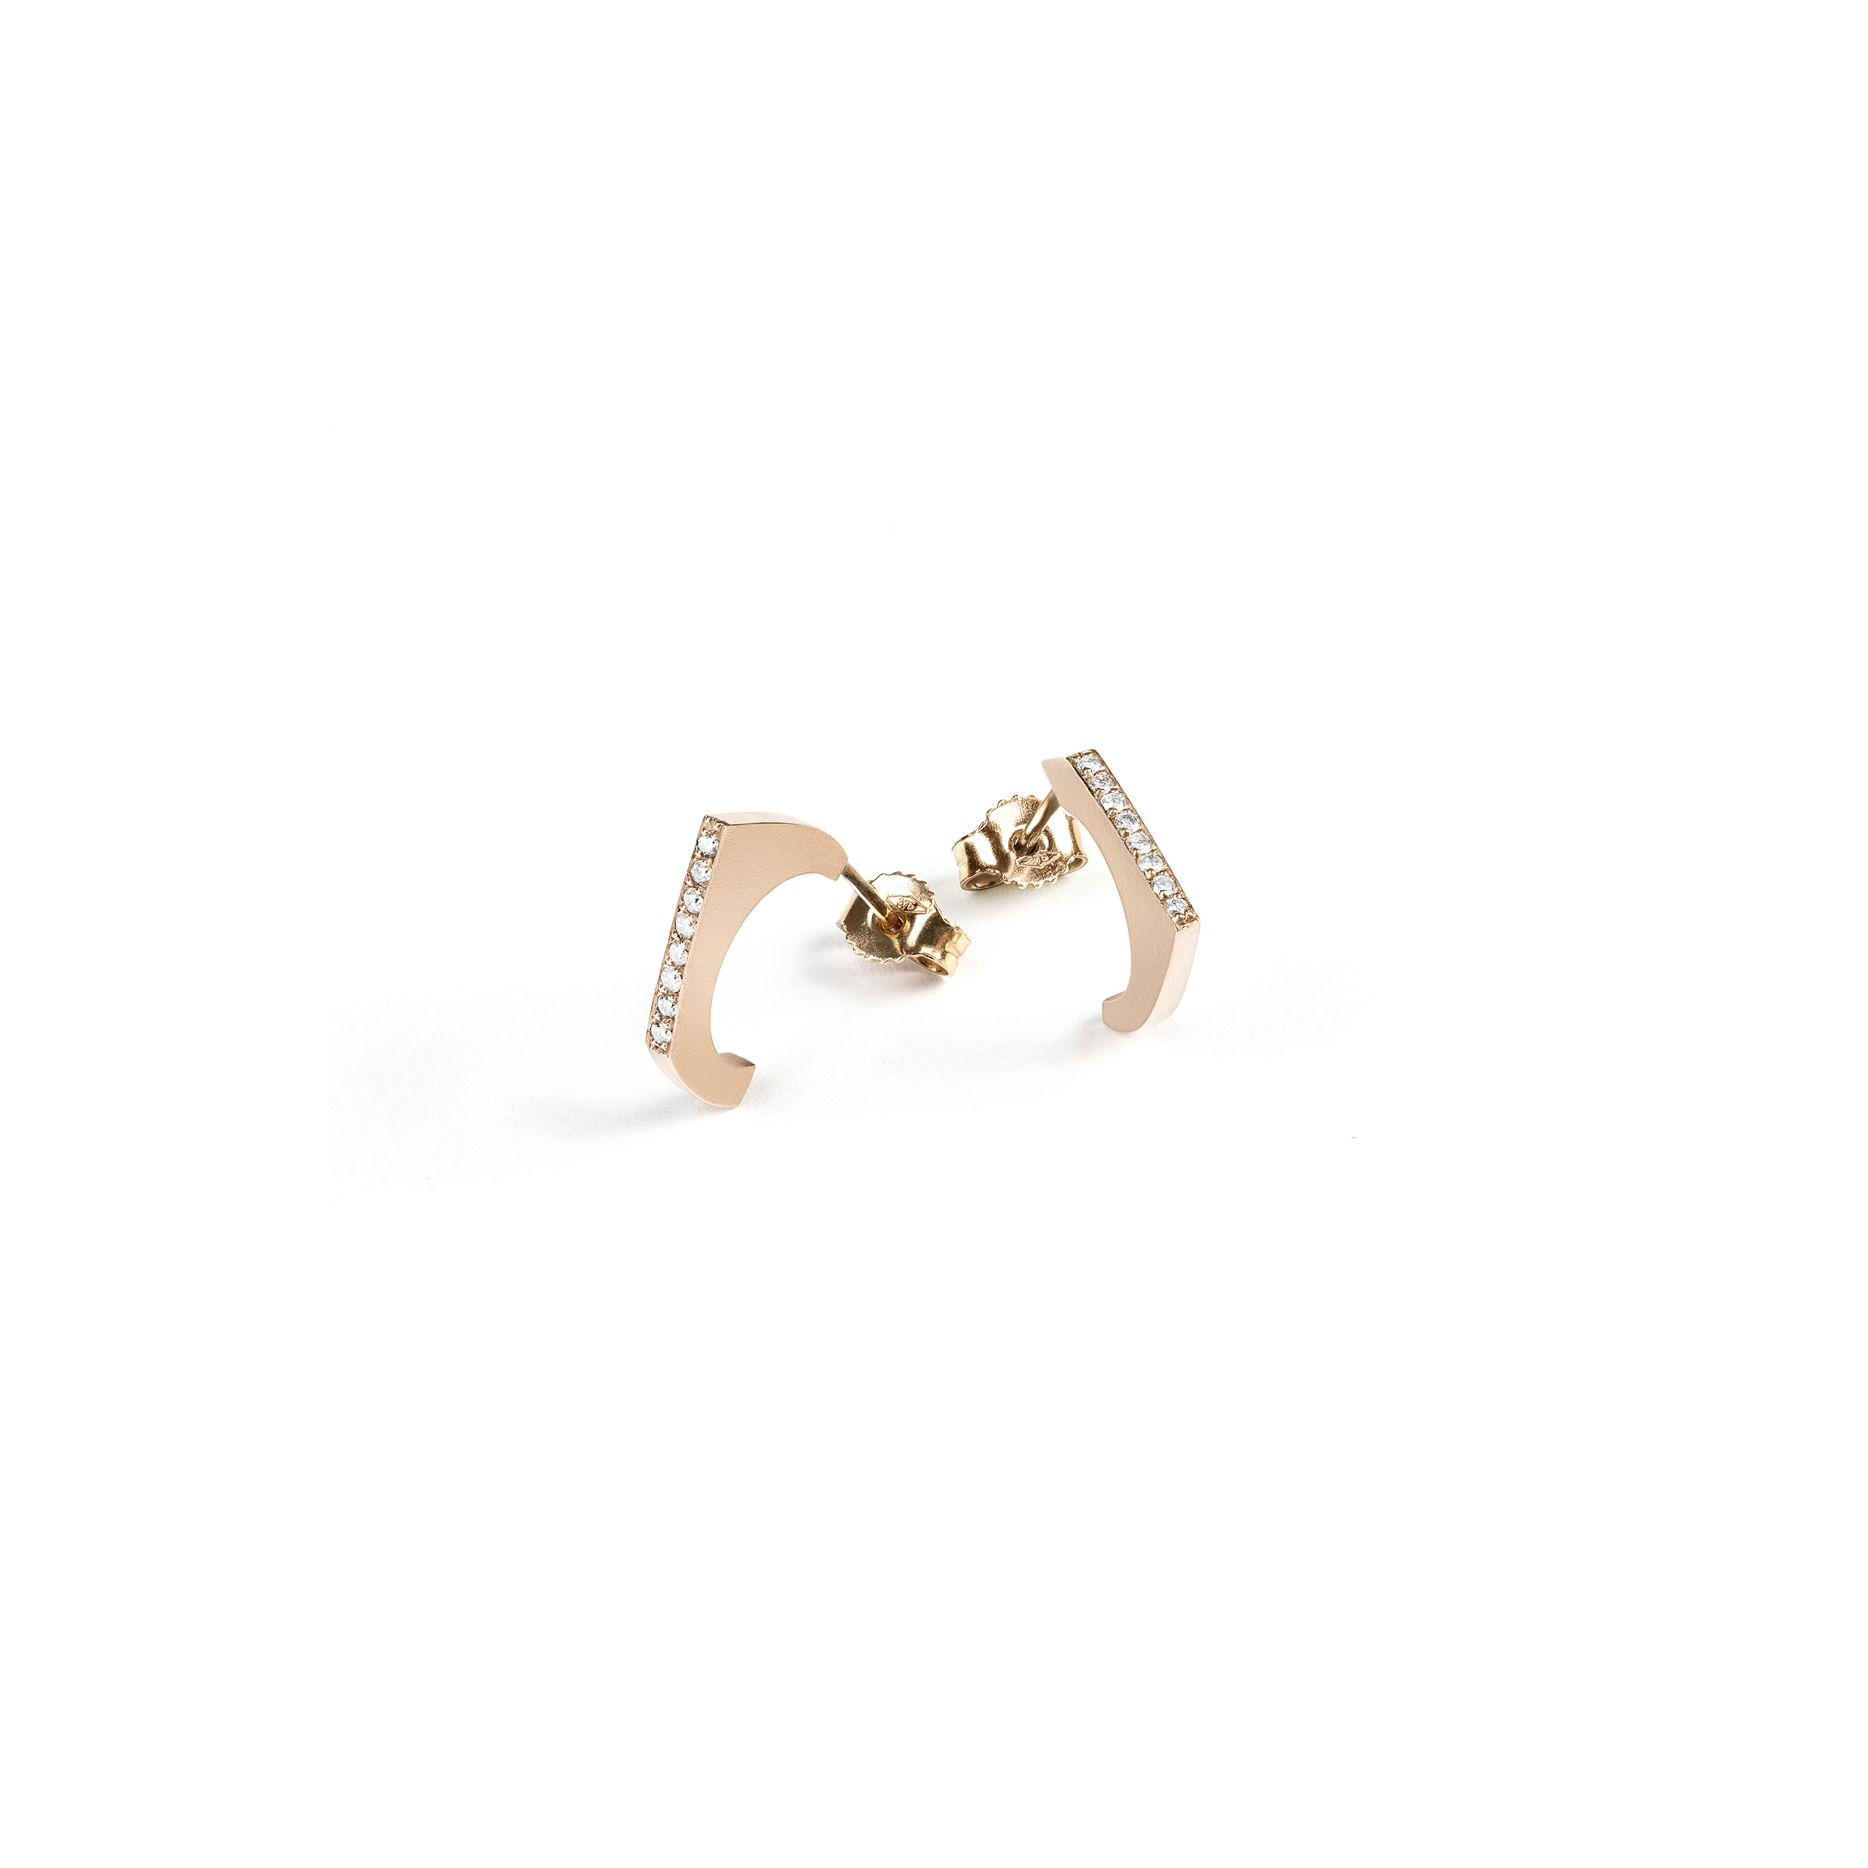 1 element 'Congiunzioni' earrings Rose gold earring with diamonds